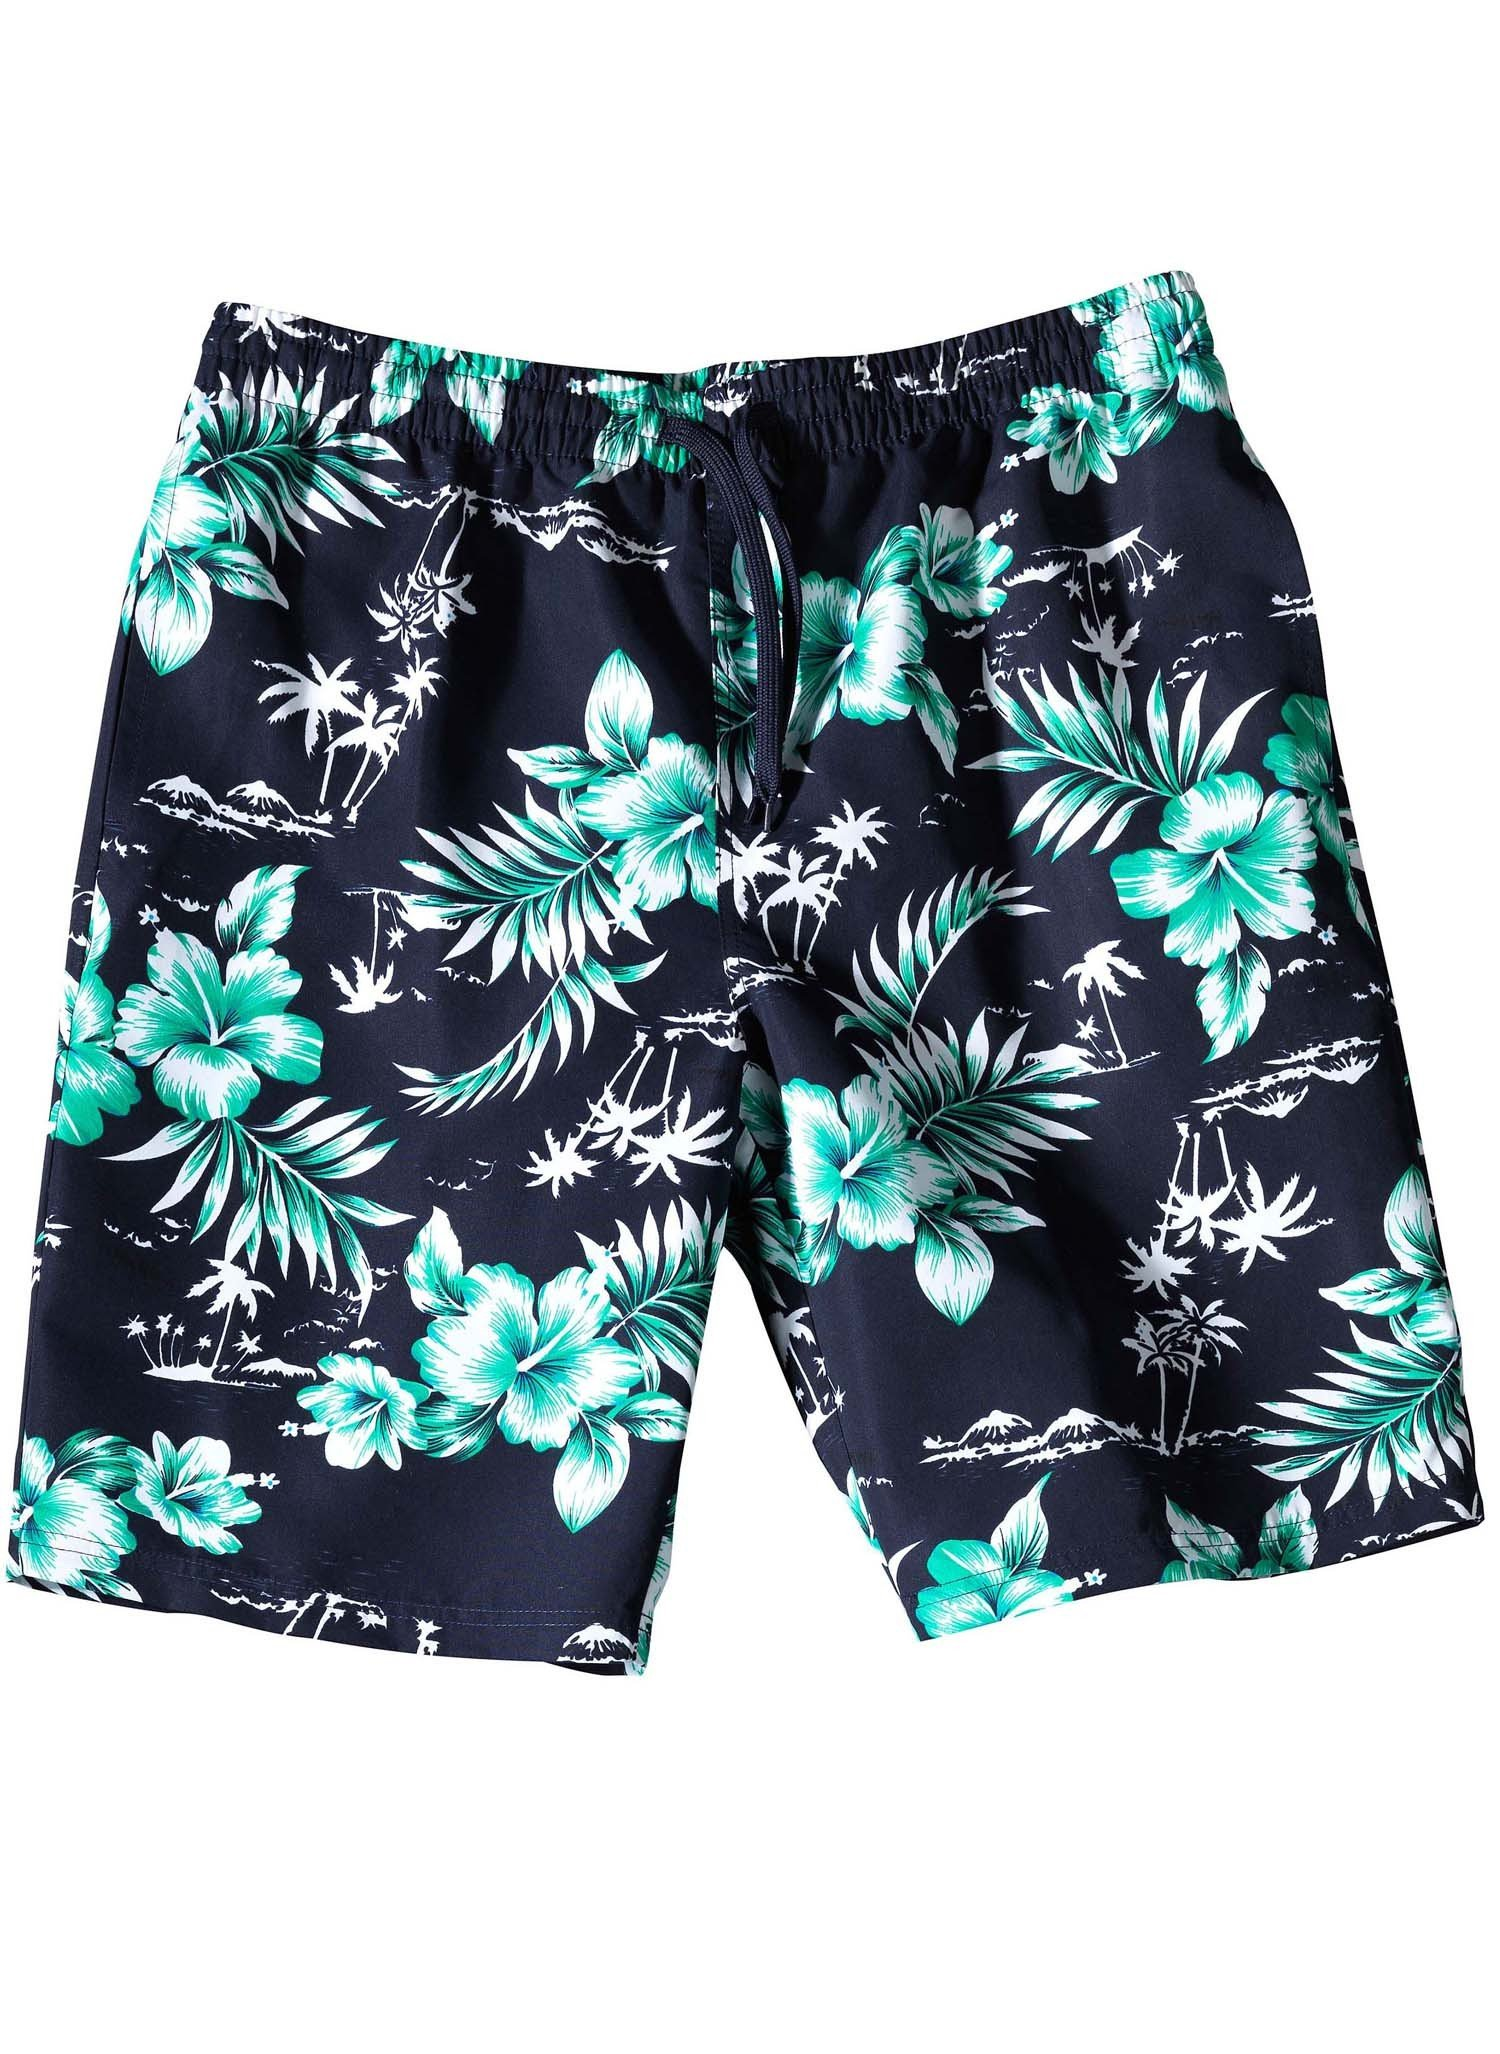 H-Bade-Shorts,HAWAII grün L 059 - 2 - Ronja.ch